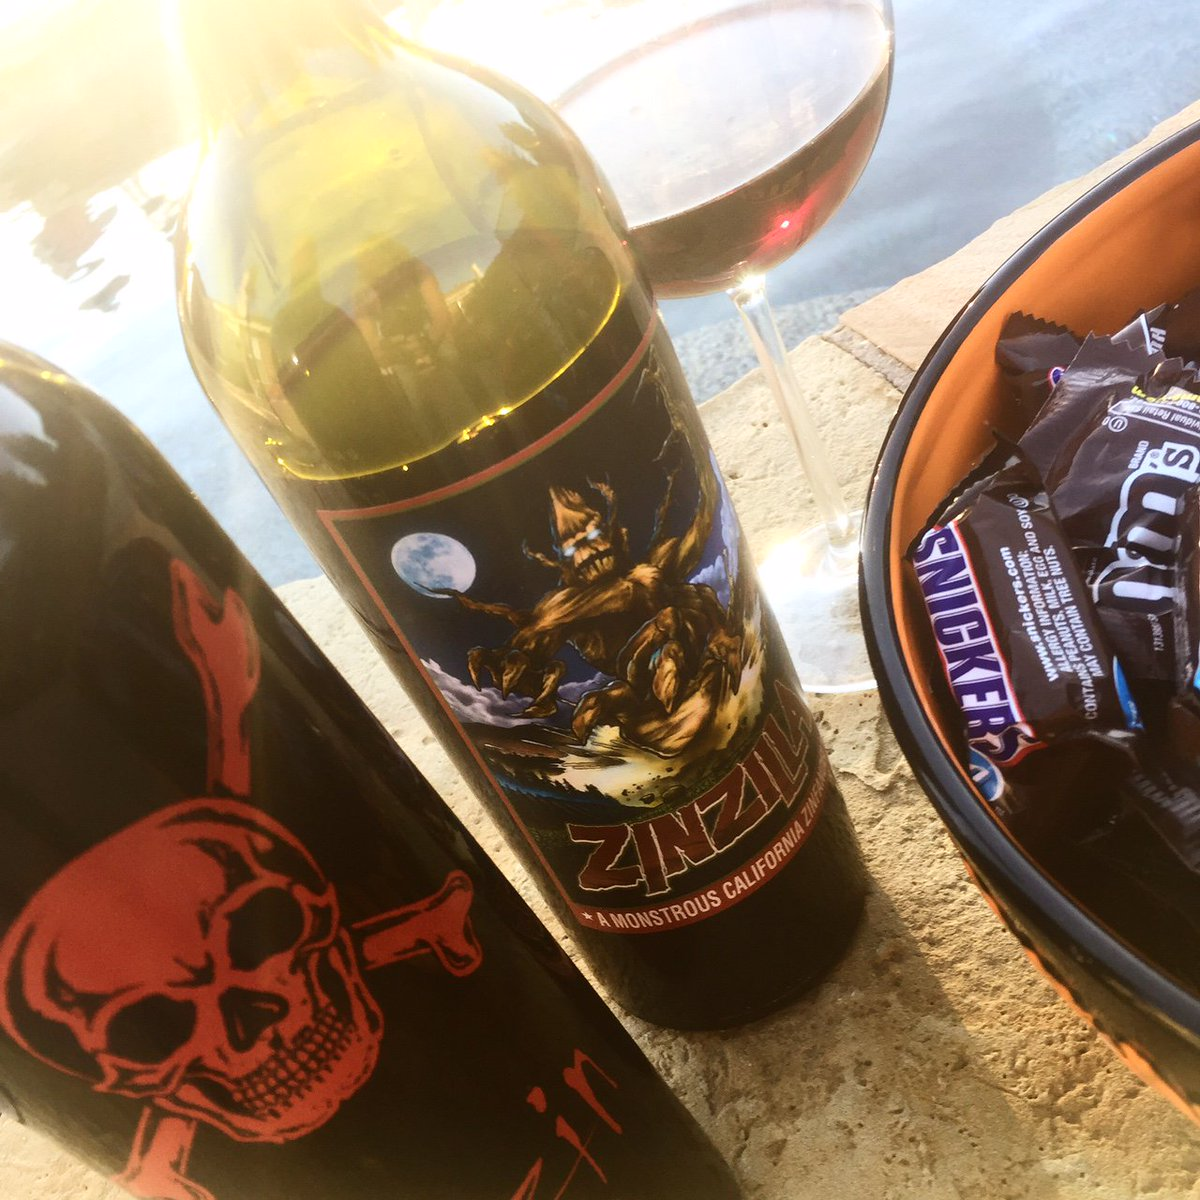 Am I the only one that enjoys pairing my wine with the evening.  For example, on Halloween, I&#39;ll probably have Witching Hour, on Debate Nights like the #TXSenateDebate I enjoyed Freakshow...Maybe it&#39;s just me.   @hmgivingsoul @winewankers @onceuponawine_ @Dracaenawines @CaraMiaSG<br>http://pic.twitter.com/U3VT8M3IMY